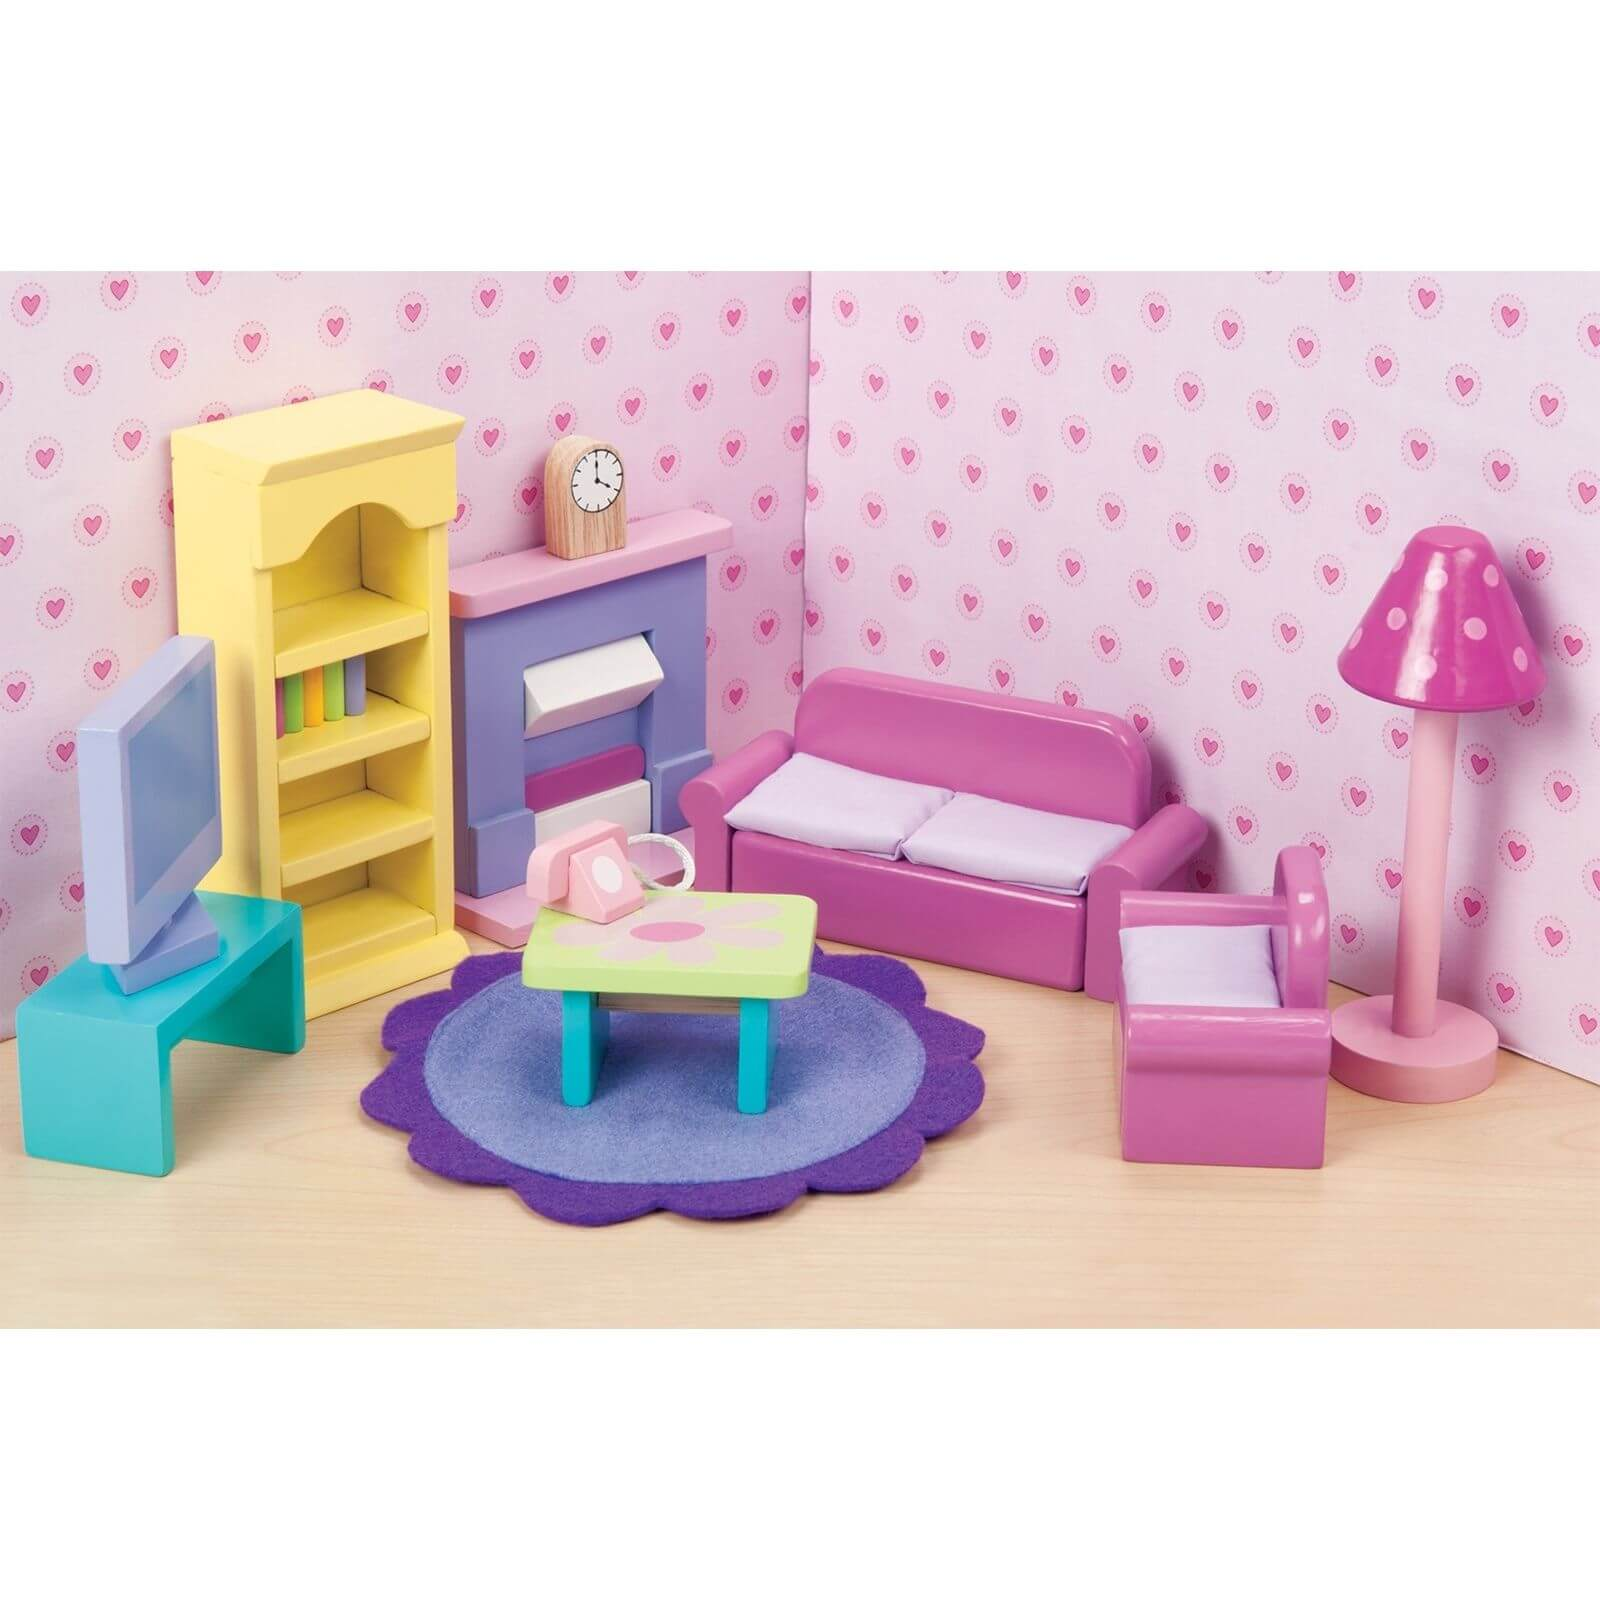 Le Toy Van Sugar Plum Sitting Room Wooden Dolls House Furniture